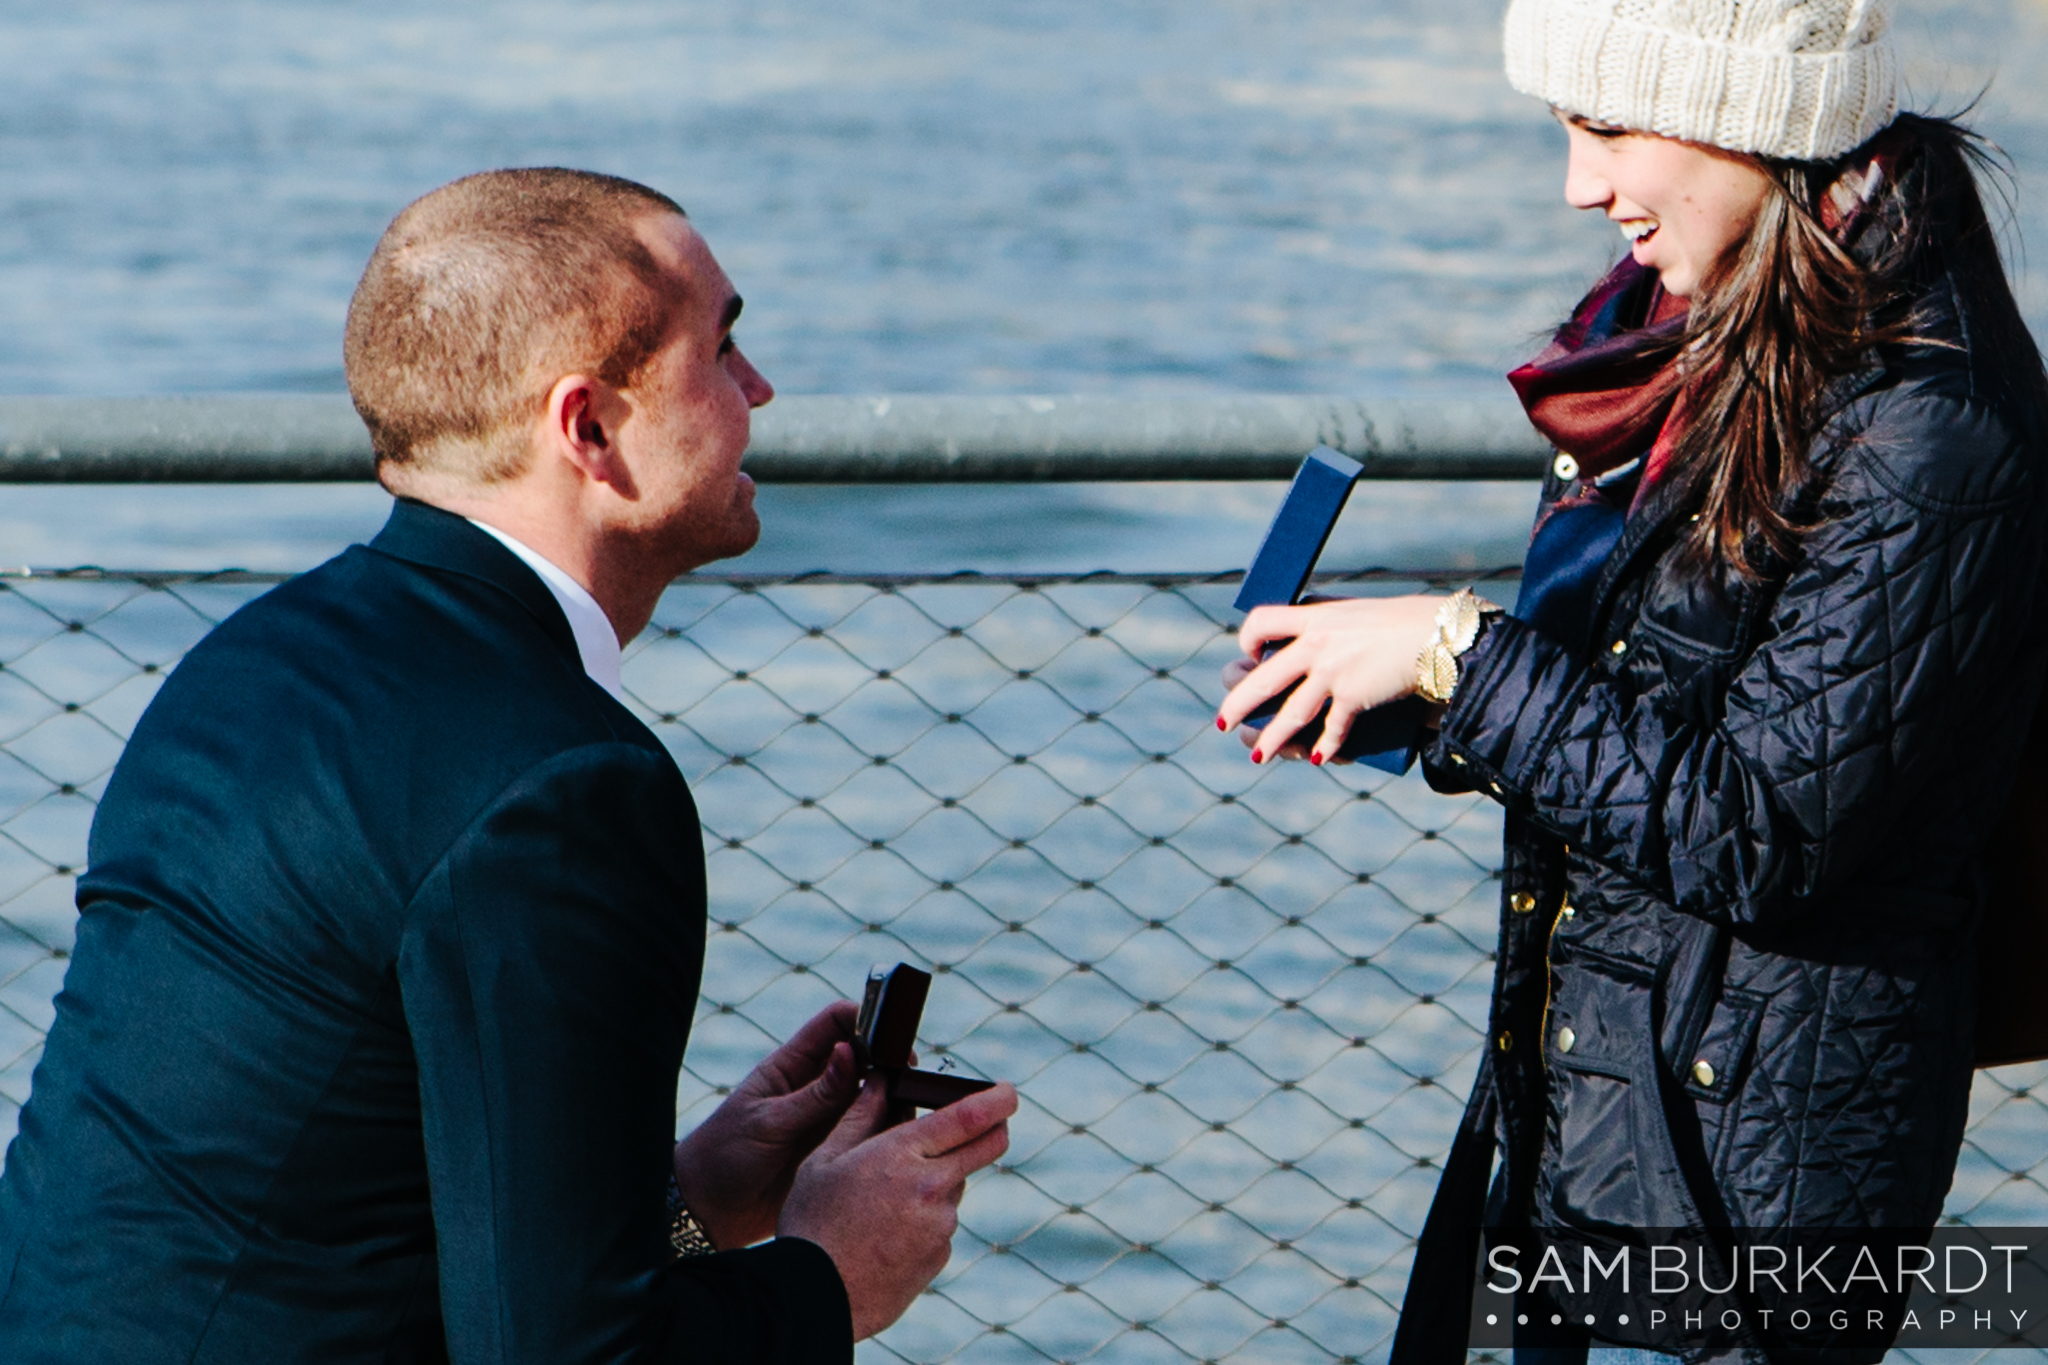 samburkardt_brooklyn_bridge_new_york_engagement_proposal_skyline_0004.jpg